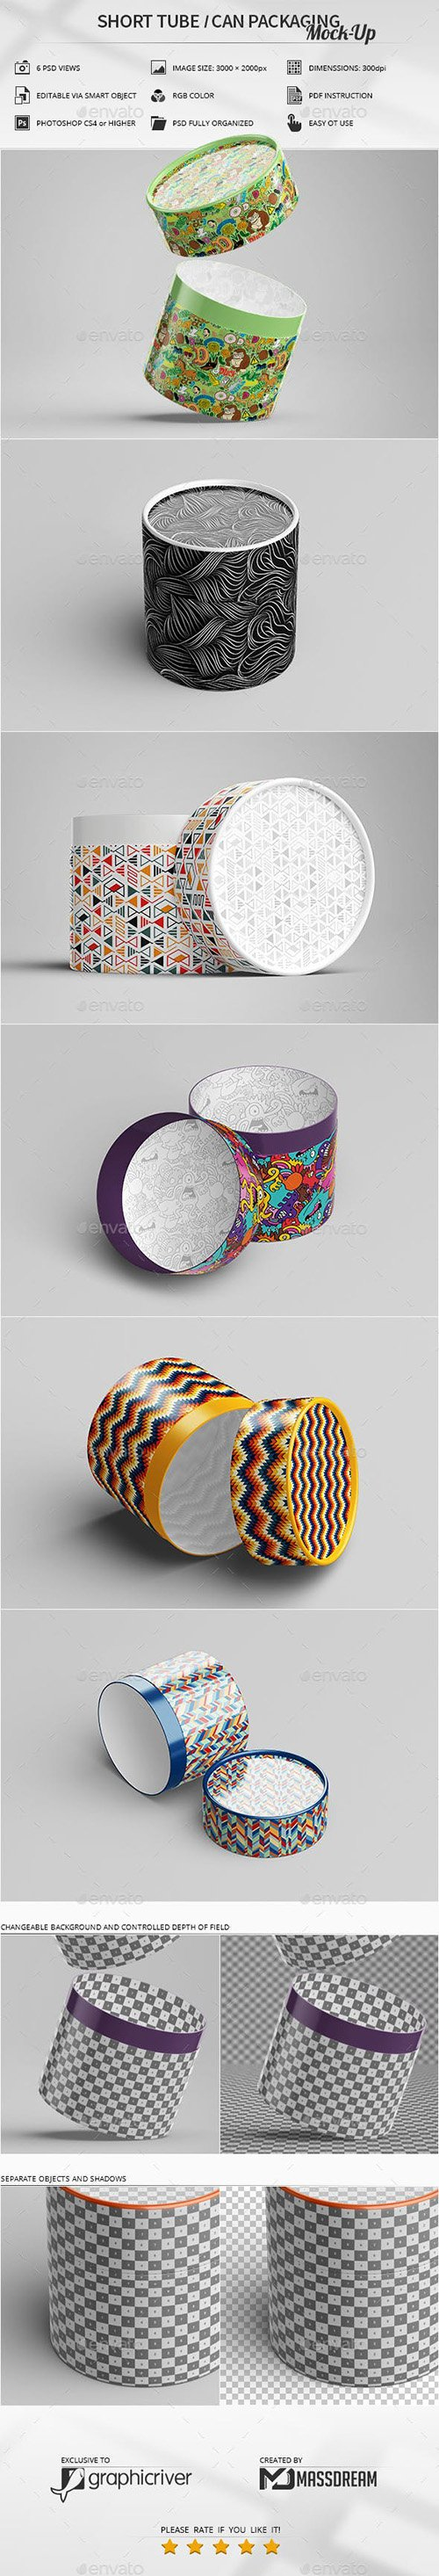 GR - Short Tube / Can Packaging Mock-Up 23079644